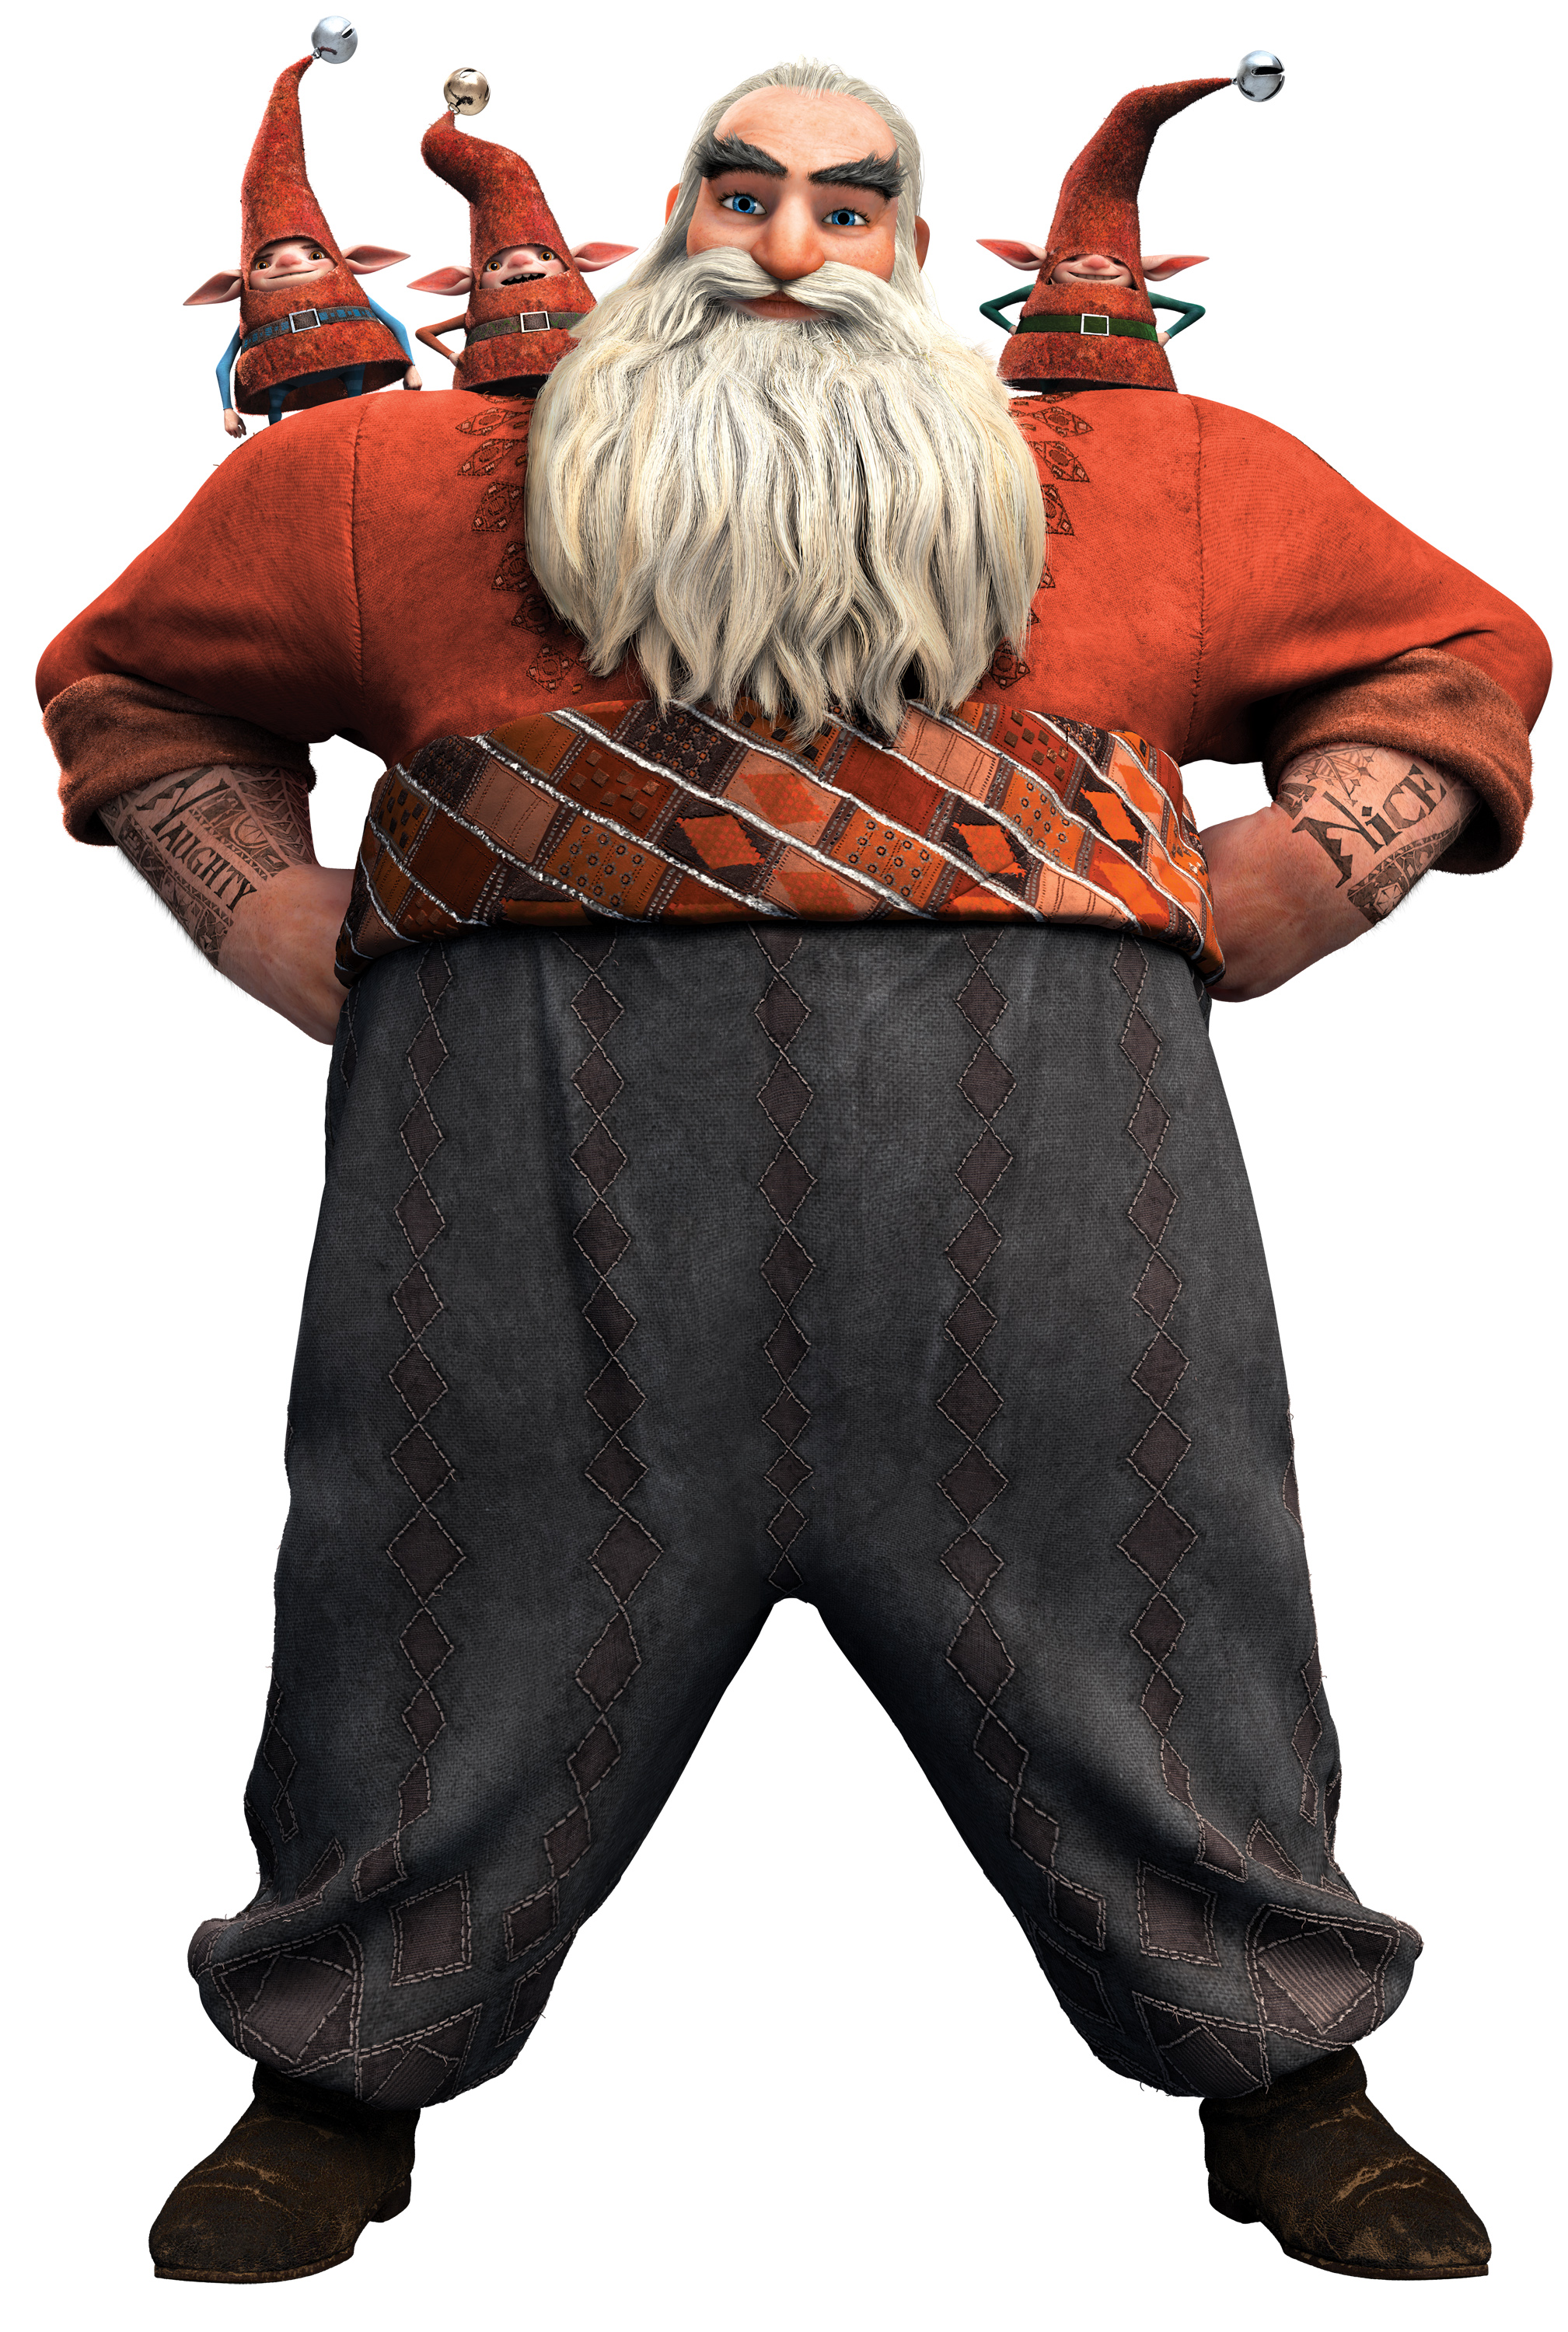 North aka Santa Claus of Rise of the Guardians